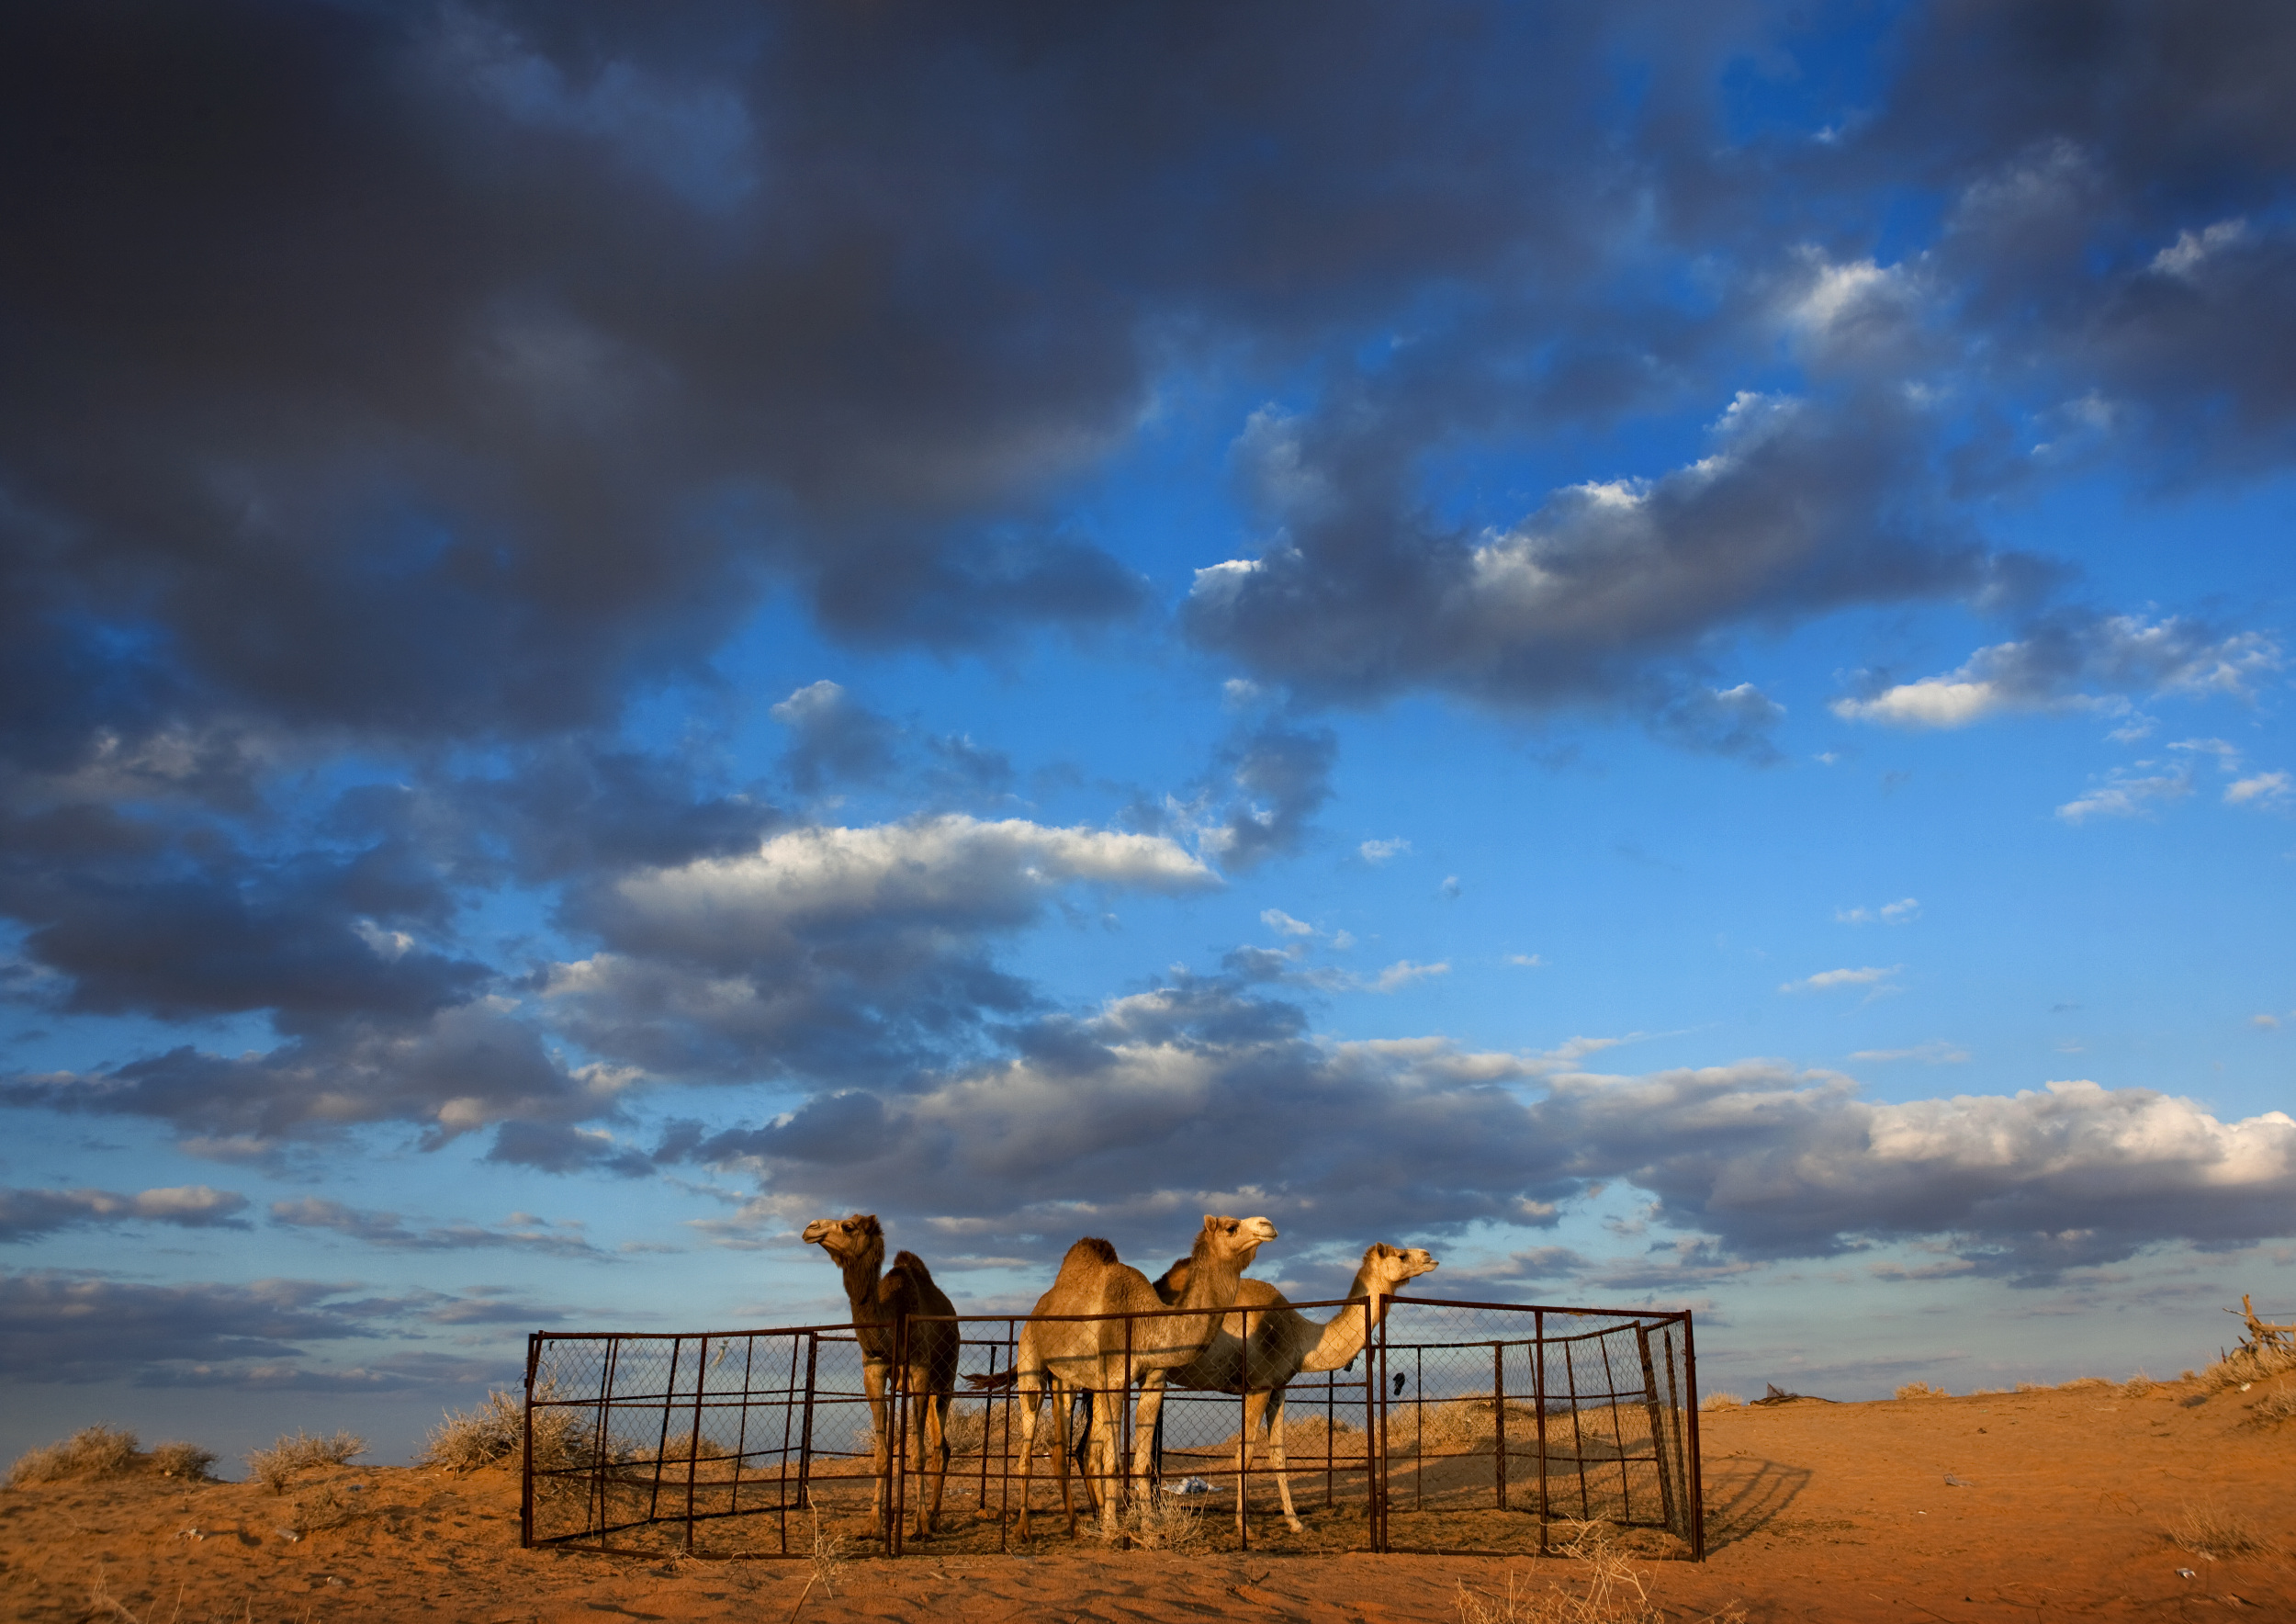 Owning and breeding camels is a good livelihood for farmers in Saudi Arabia.